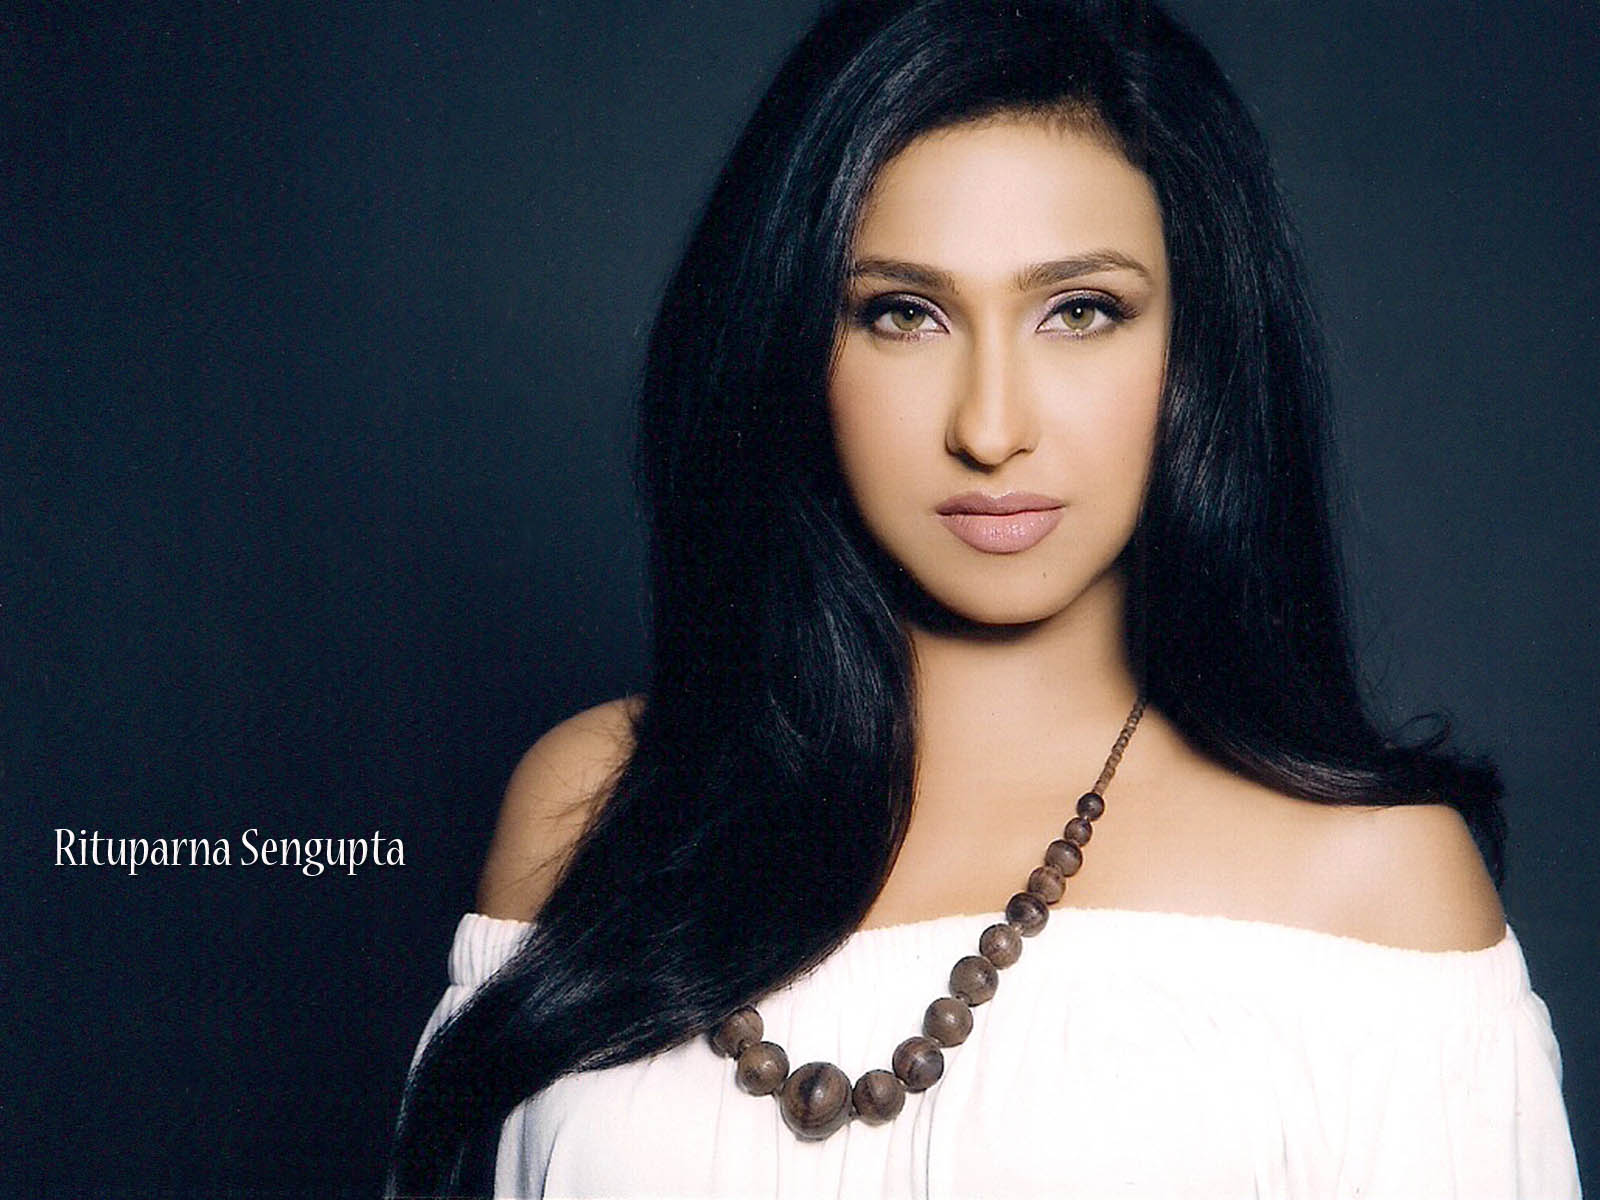 Rituparna%252525252BSengupta%252525252BWallpaper Top undergarments and Bra types best top girls hot babes wallpaper sexy babes wallpapers hd 6adriana lima sexy figure normal nude boobs sexy bra red black green skin color m4 3 Kim Kardashian Naked the one and only is back again naked with boobs flying ...